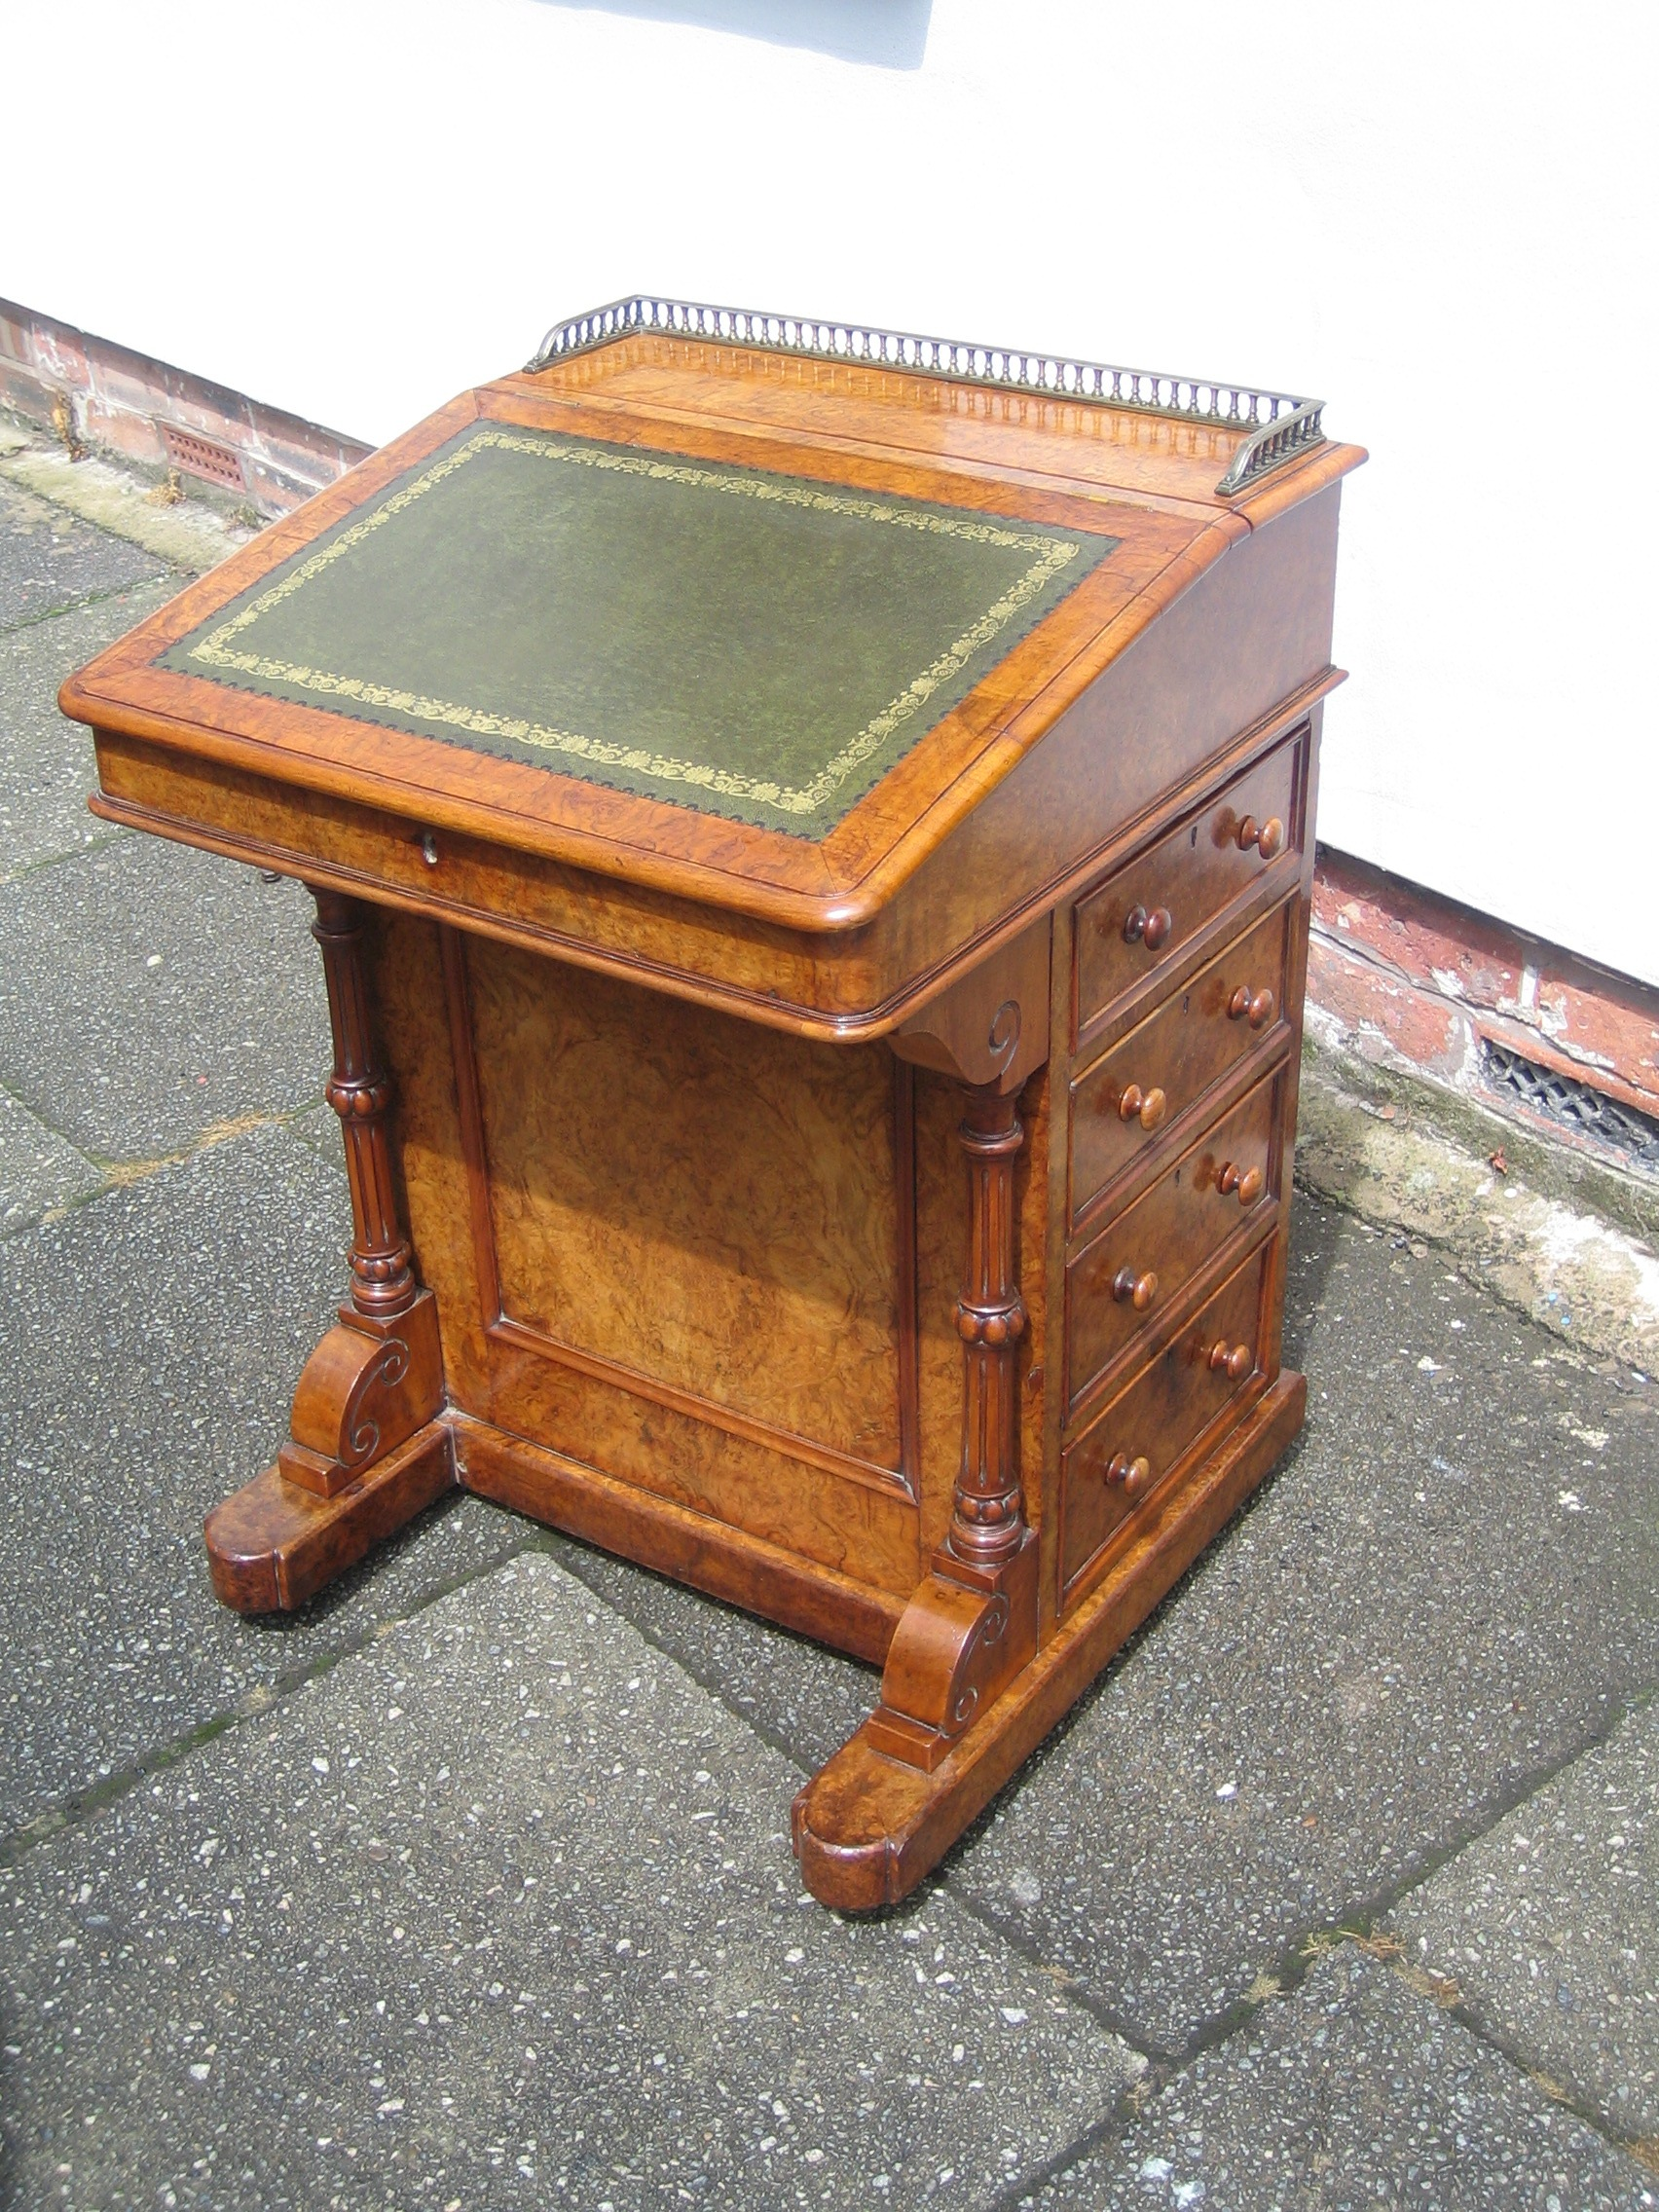 davenport writing desk Lot: a victorian walnut davenport writing desk, lot number: 0002, starting bid: $200, auctioneer: quinn's auction galleries, auction: fine & decorative arts auction, date: september 15th, 2013 pdt.